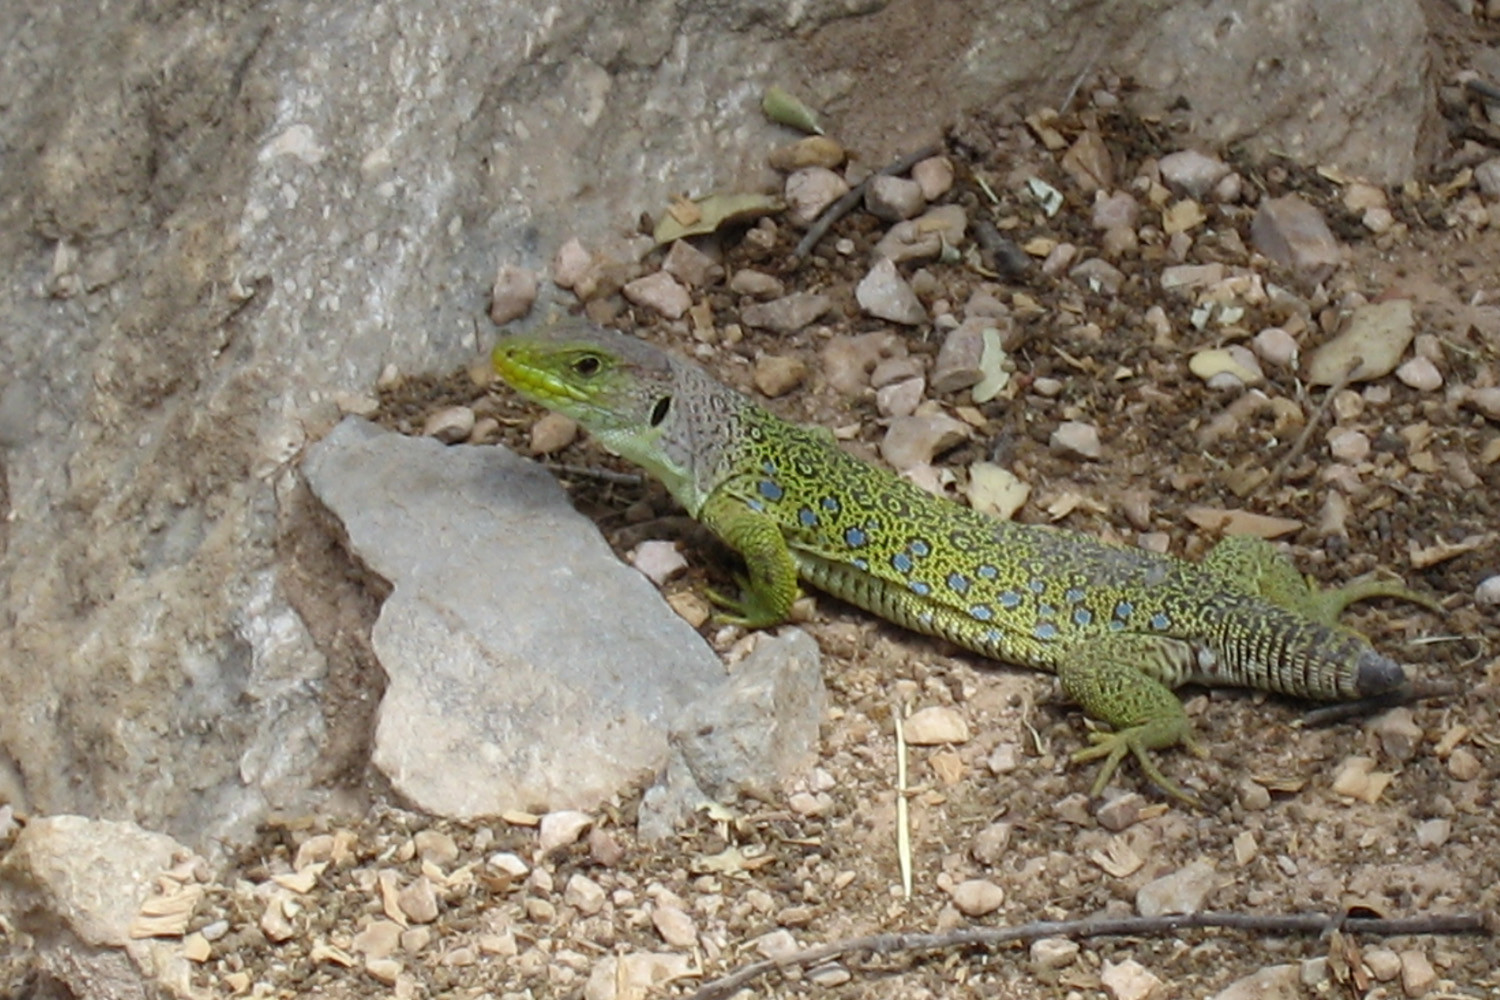 A lizard that has lost his tail